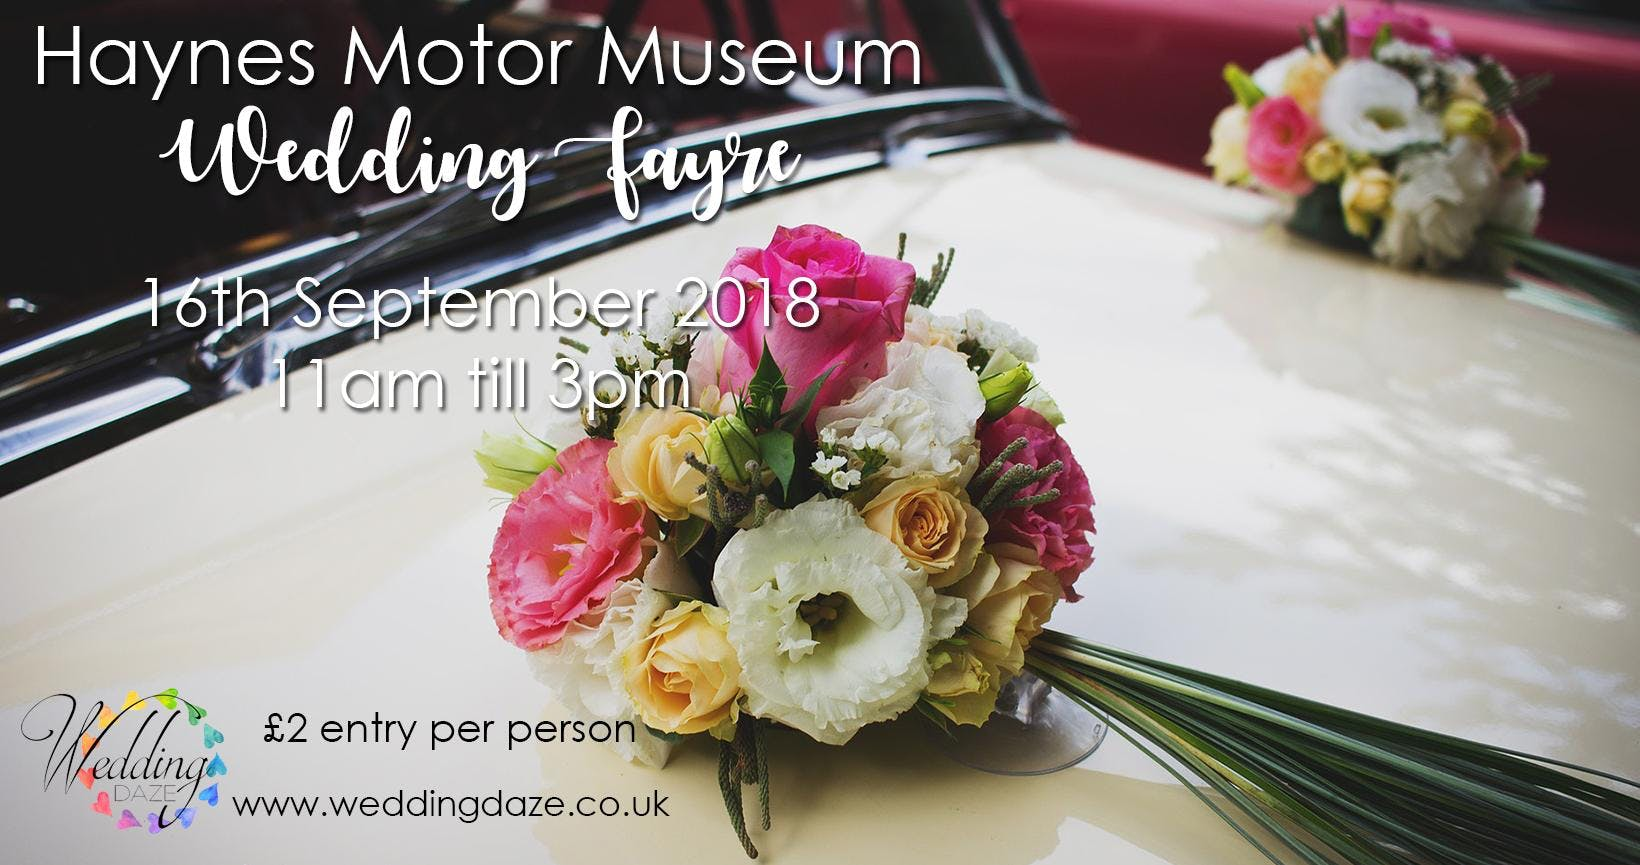 Haynes Motor Museum Wedding Exhibition 160918